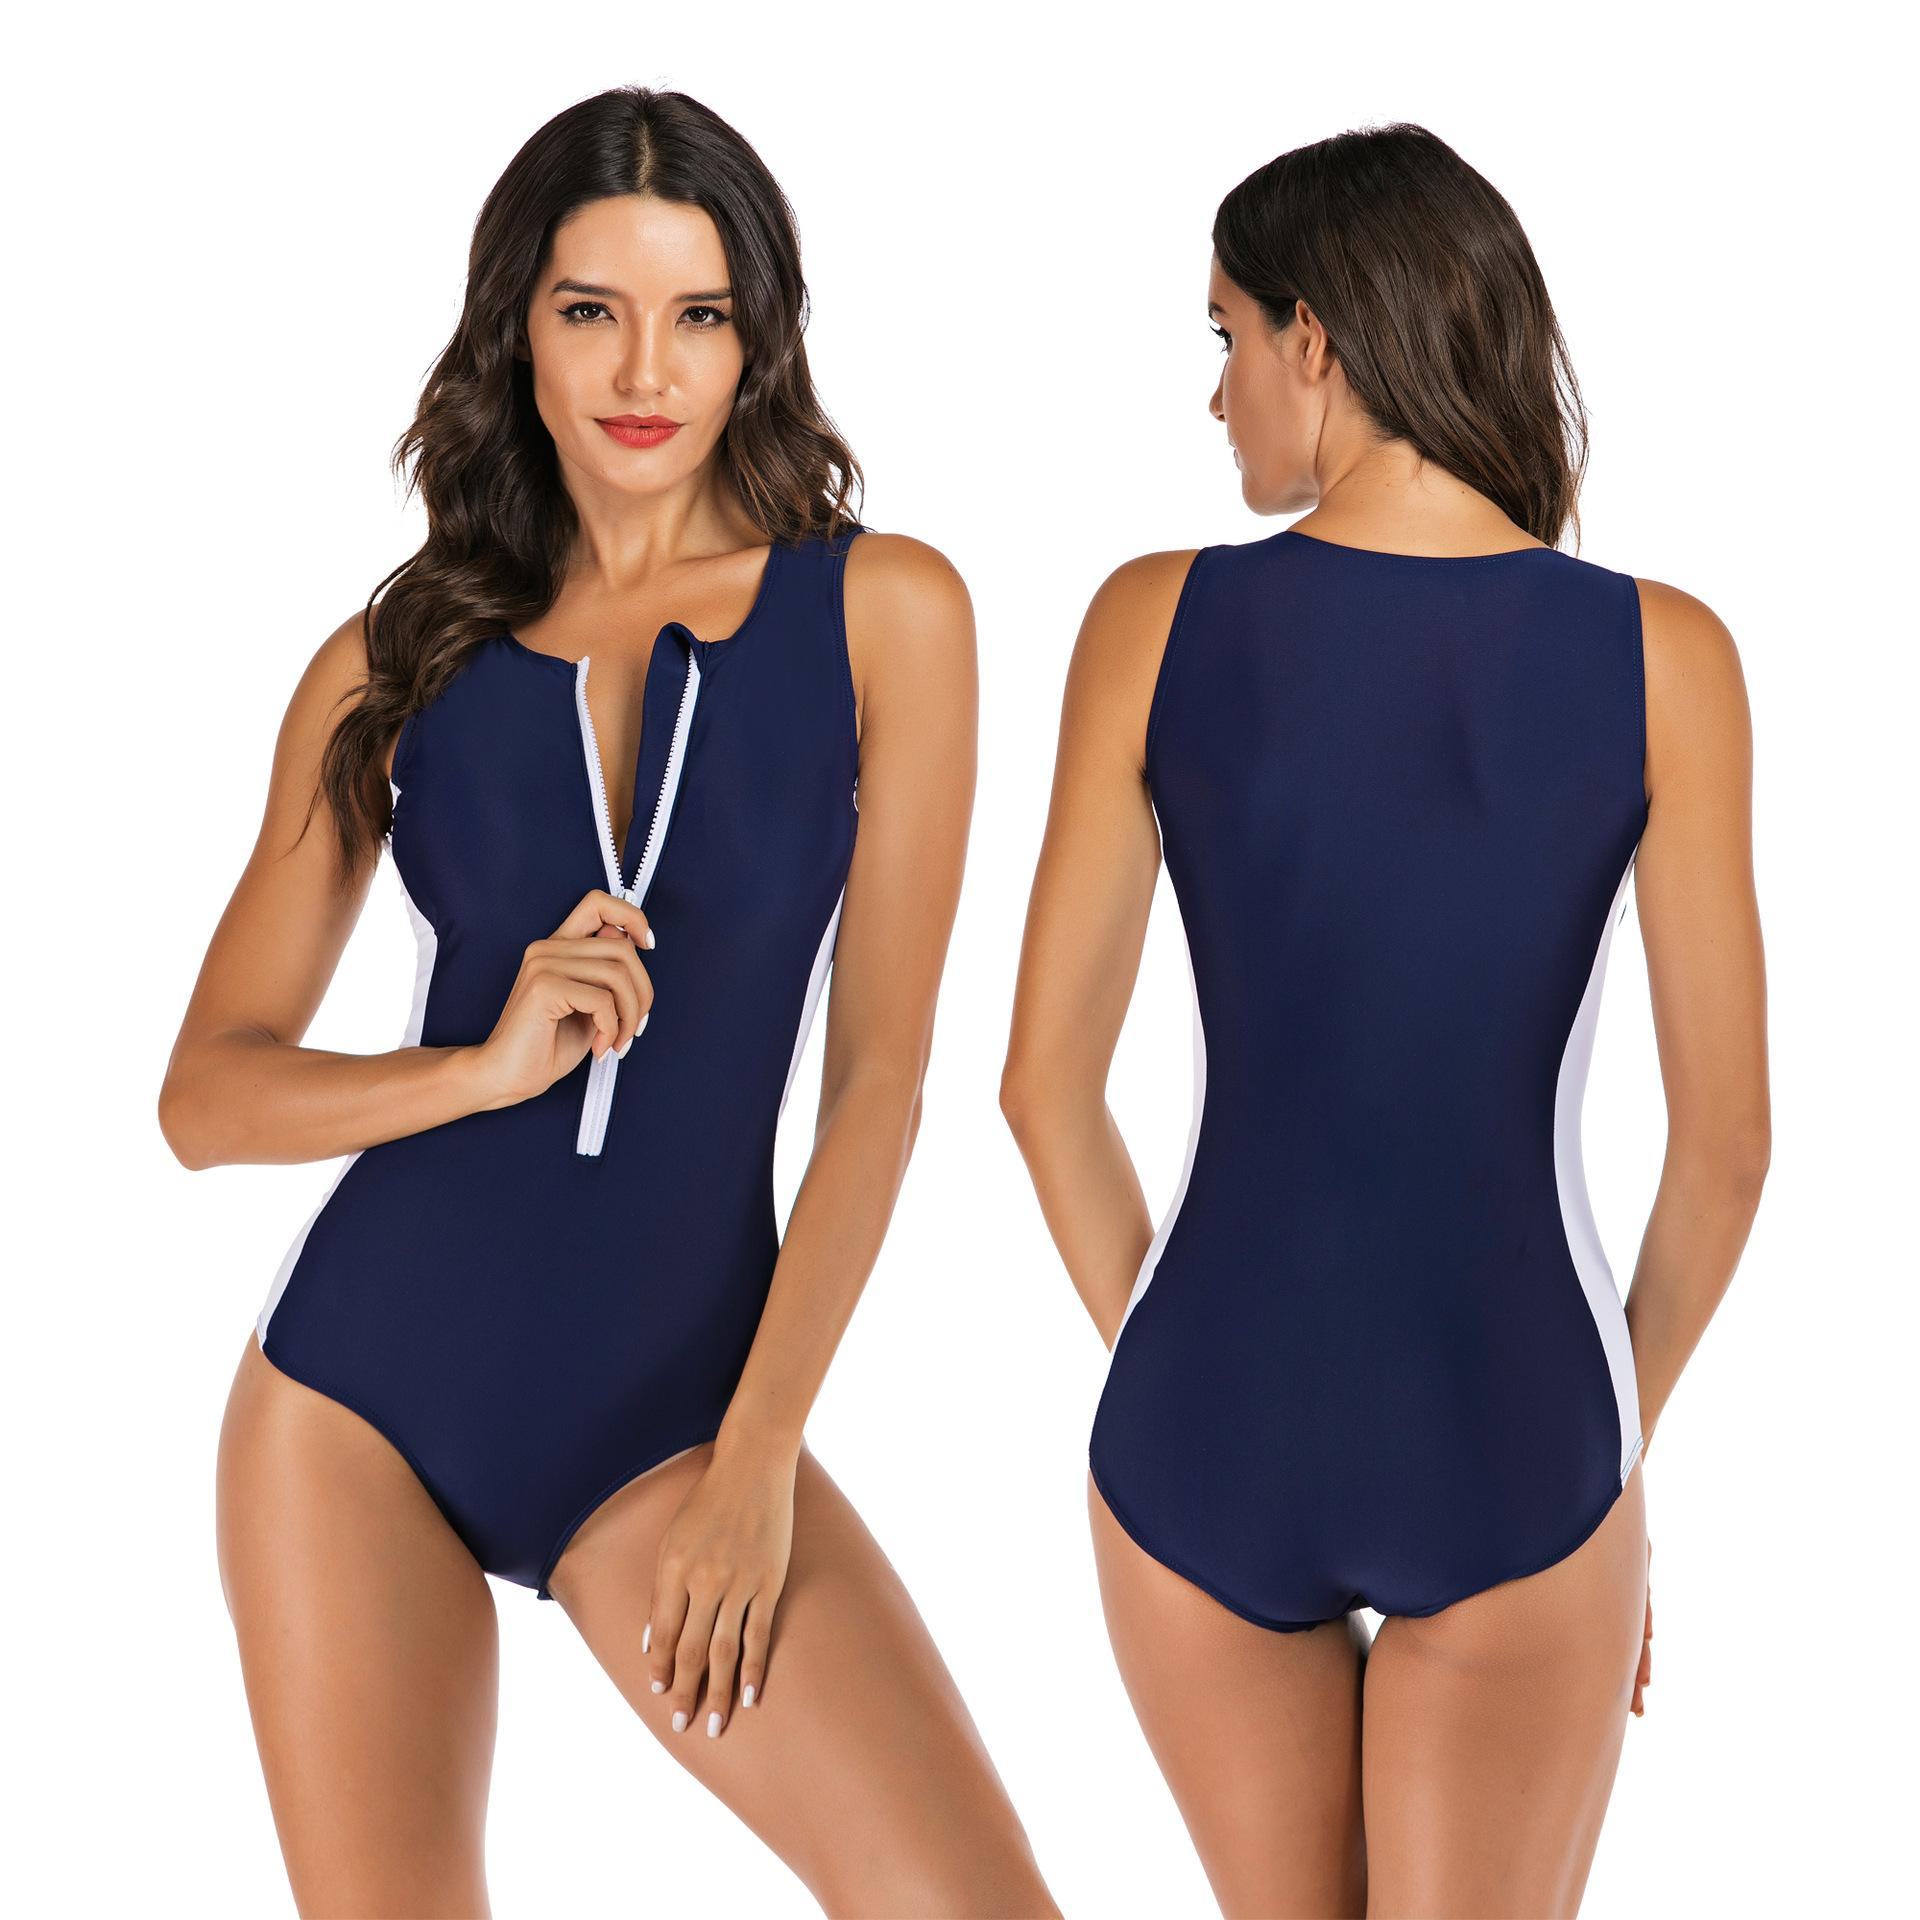 New Zipper One Piece Swimsuit Female Navy Swimwear Women Sport Swimming Suits for Women Rash Guard Beach Wear XXL